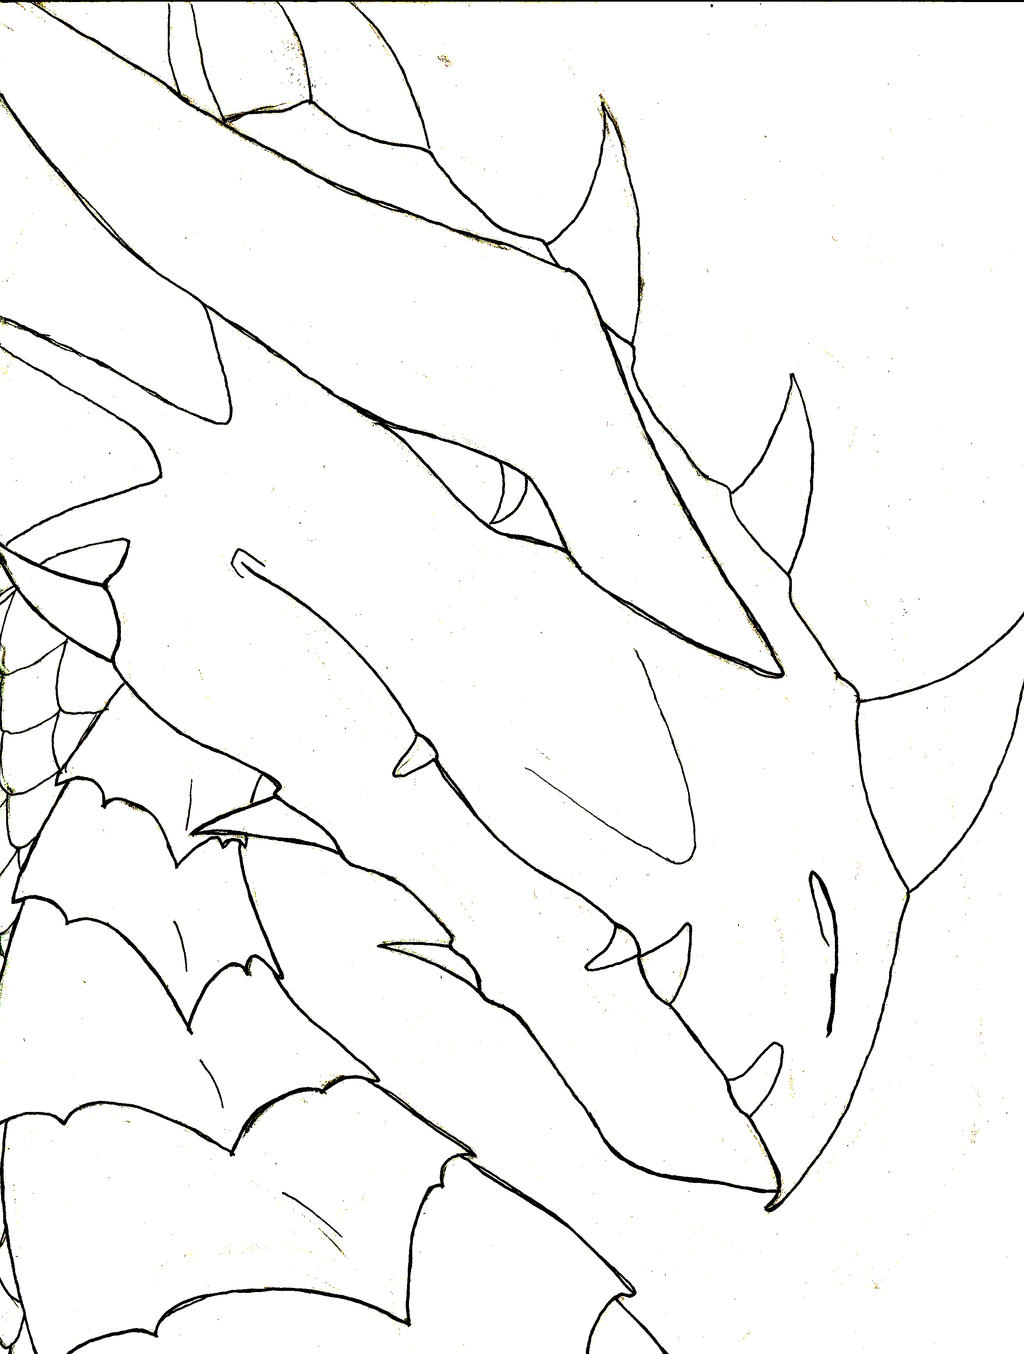 Line Drawing Dragon : Dragon line art by amethystdragon on deviantart